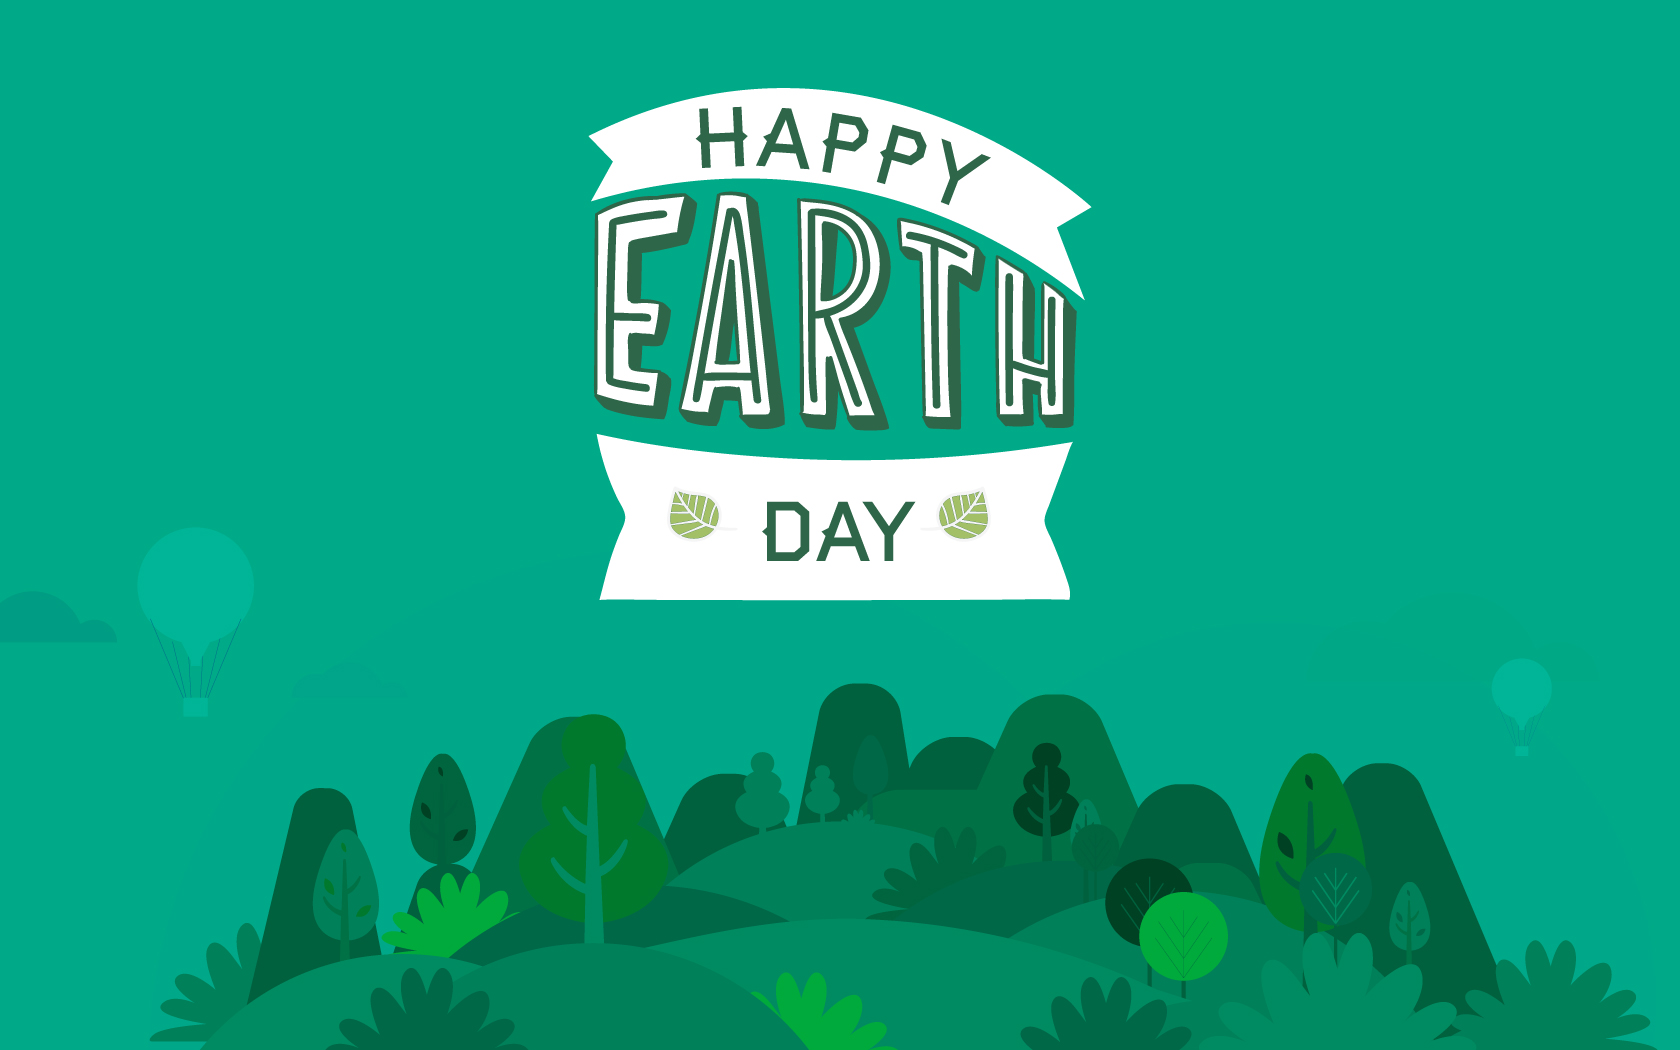 Earth Day Images and gif